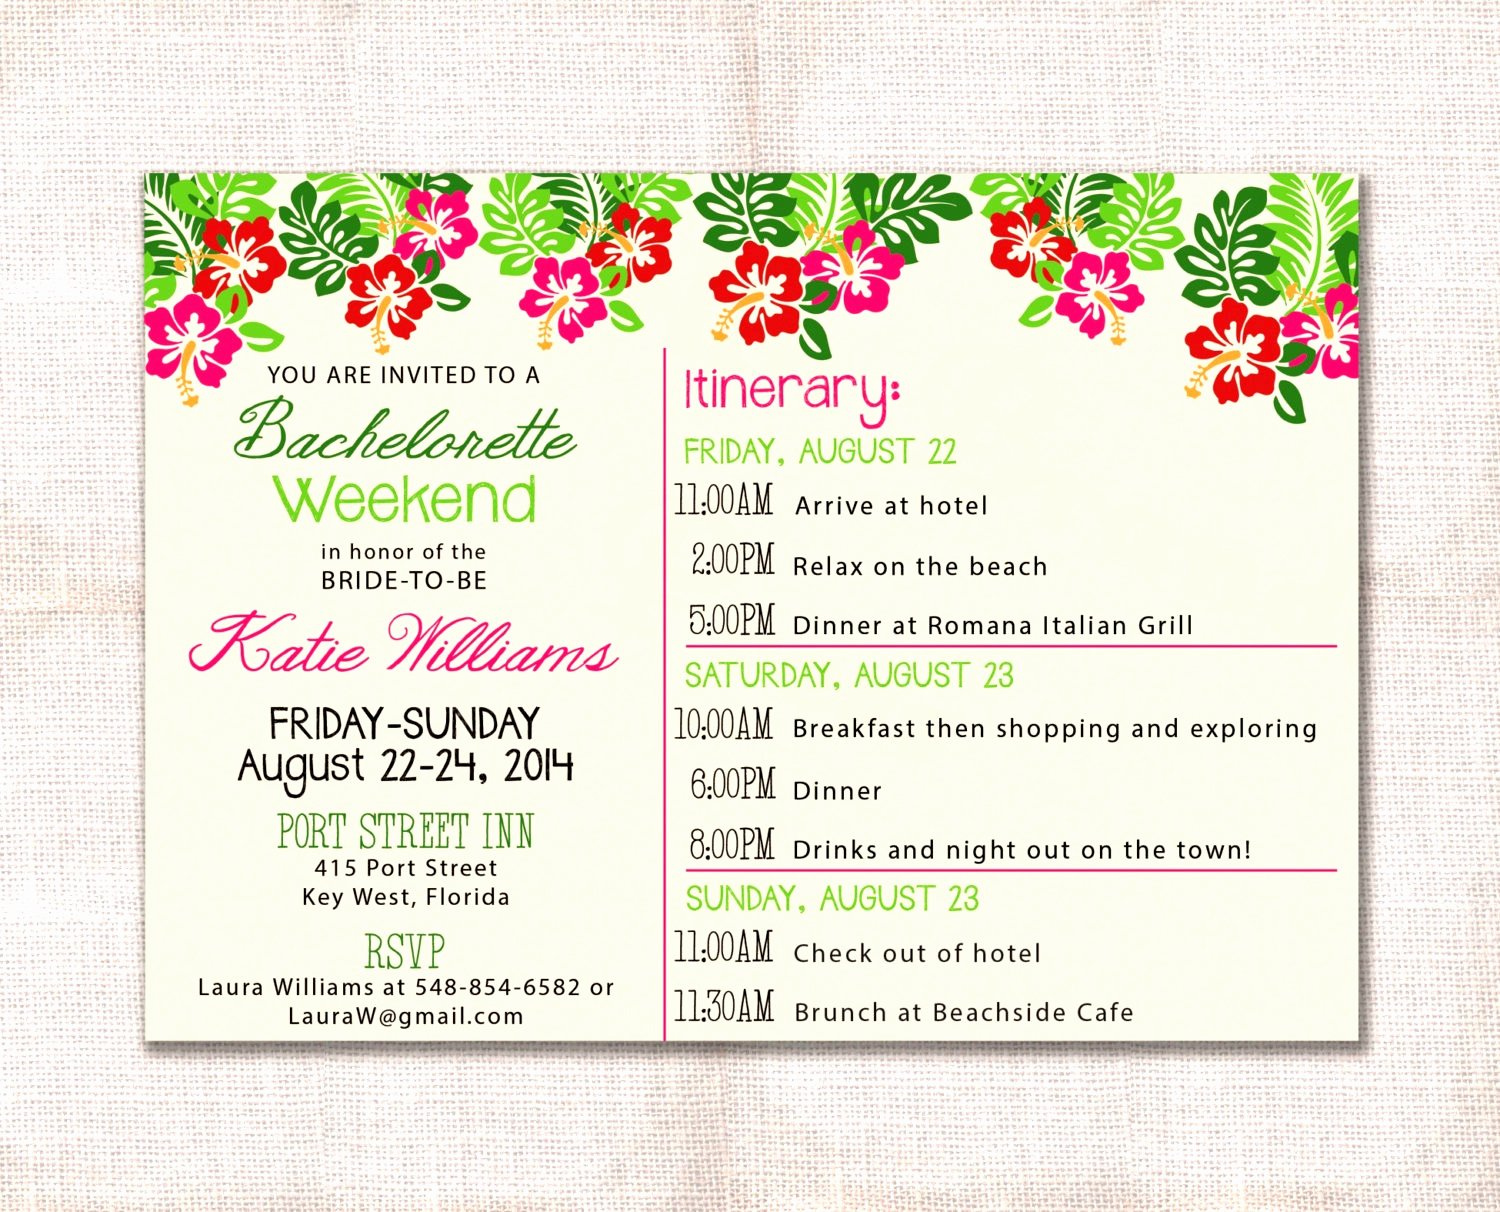 Bachelorette Itinerary Template Free Fresh Bachelorette Itinerary Template Etsy Party Weekend